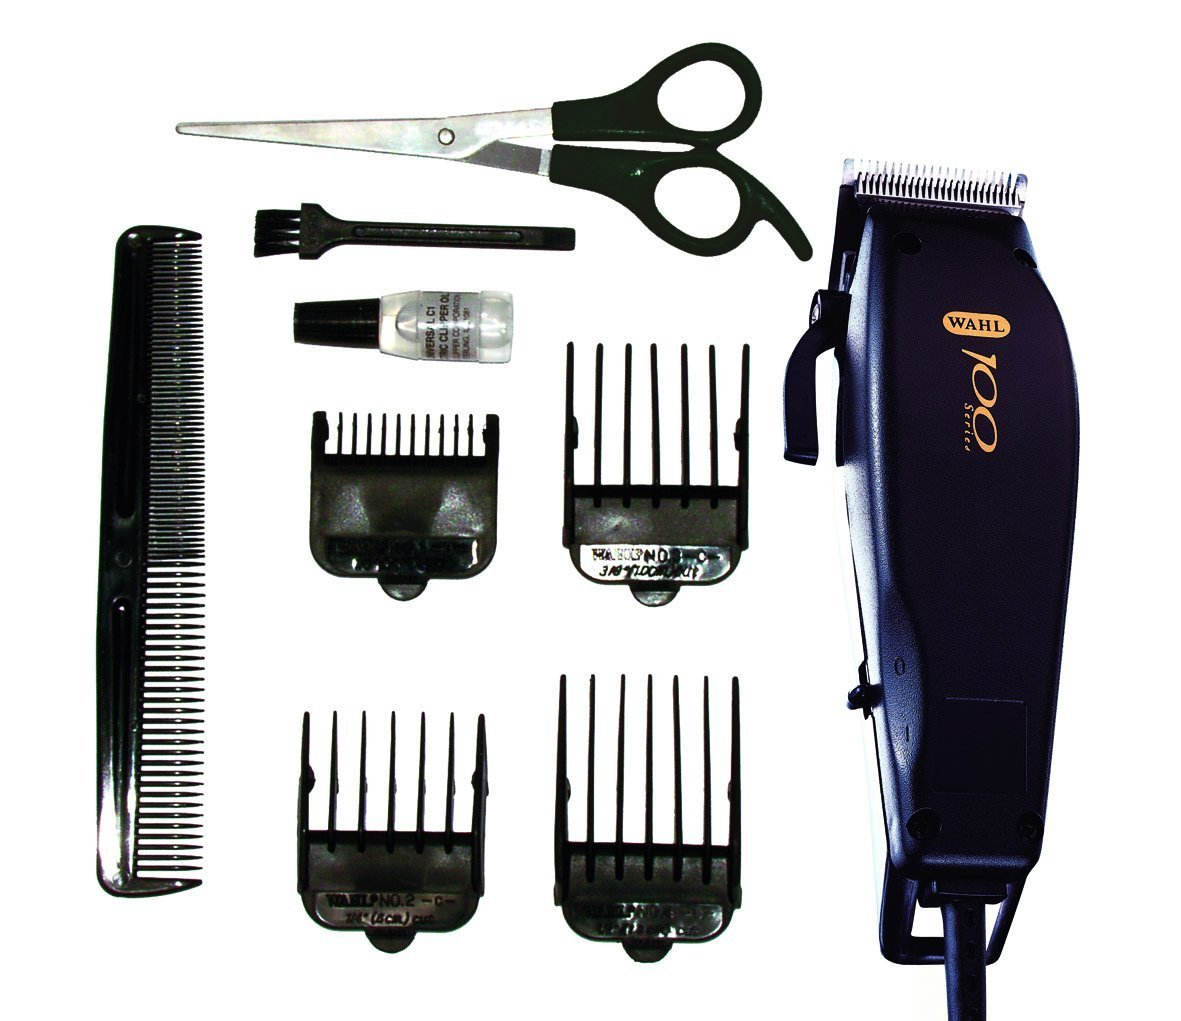 Wahl 100 Mains Electric Hair Trimmer Kit Clipper Set Mens Gent Boys Haircutting